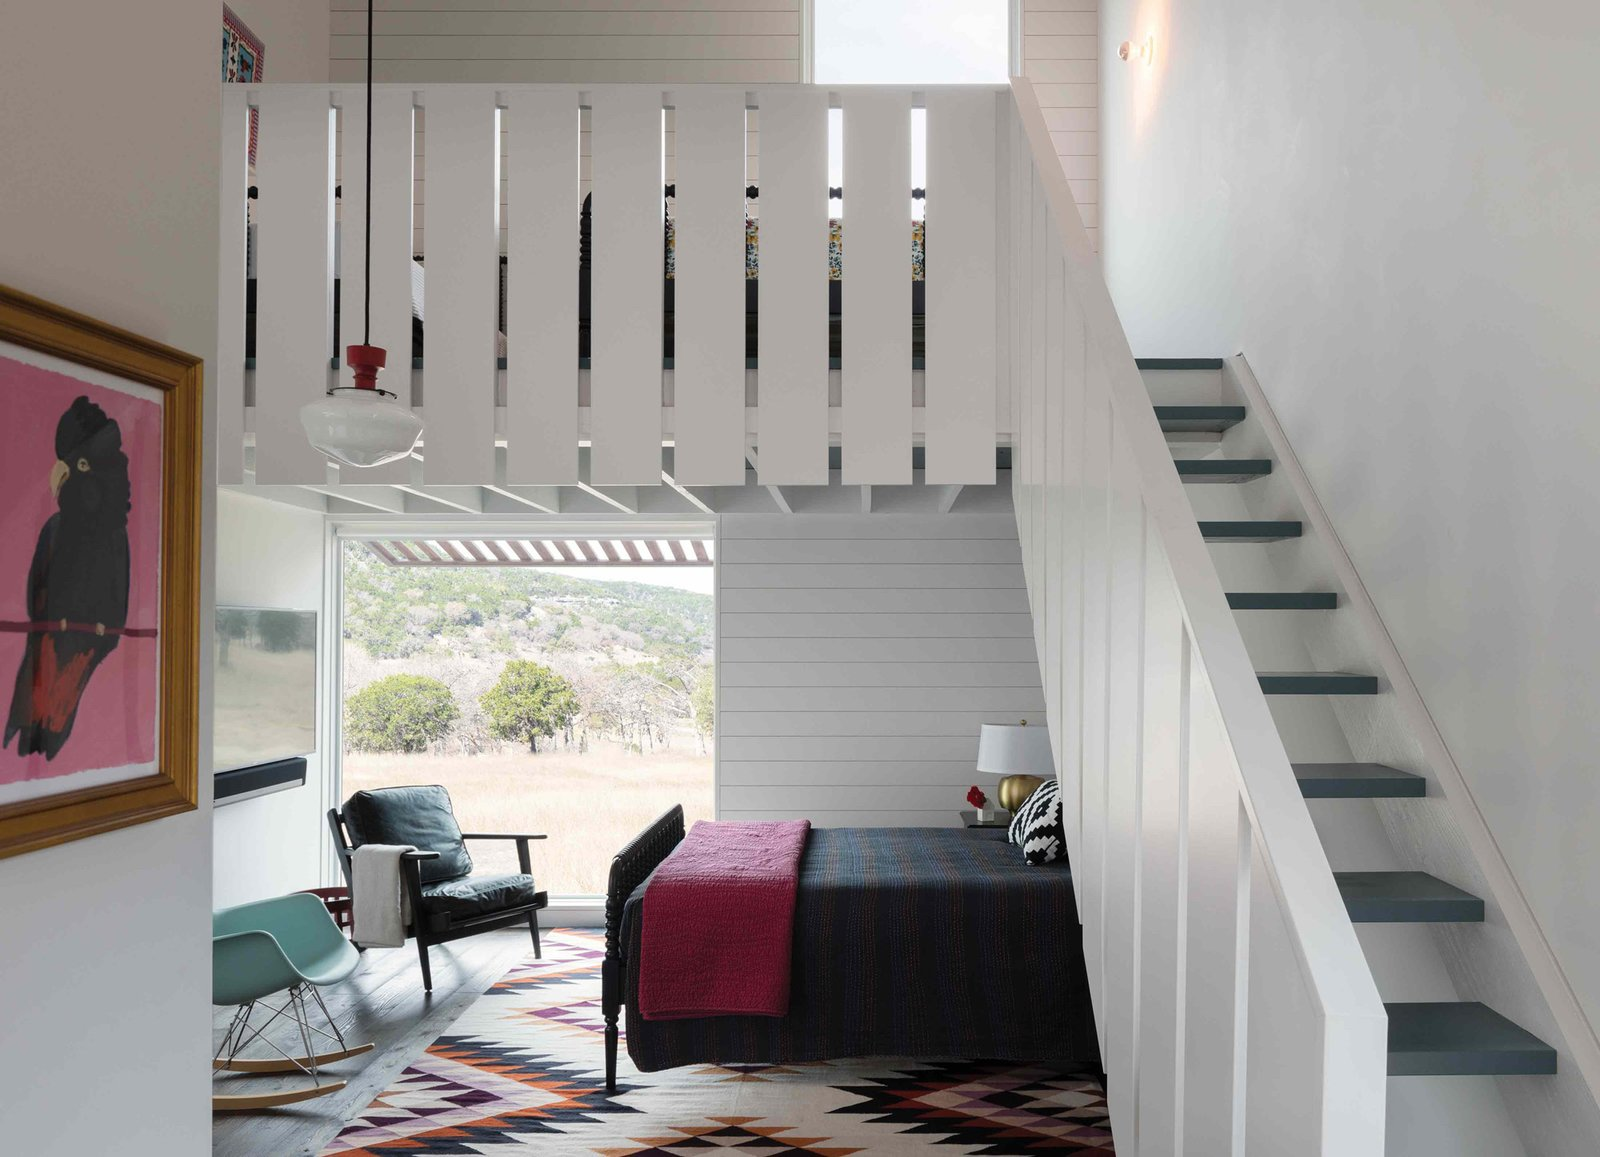 Camp Frio by Tim Cuppett Architects guest house